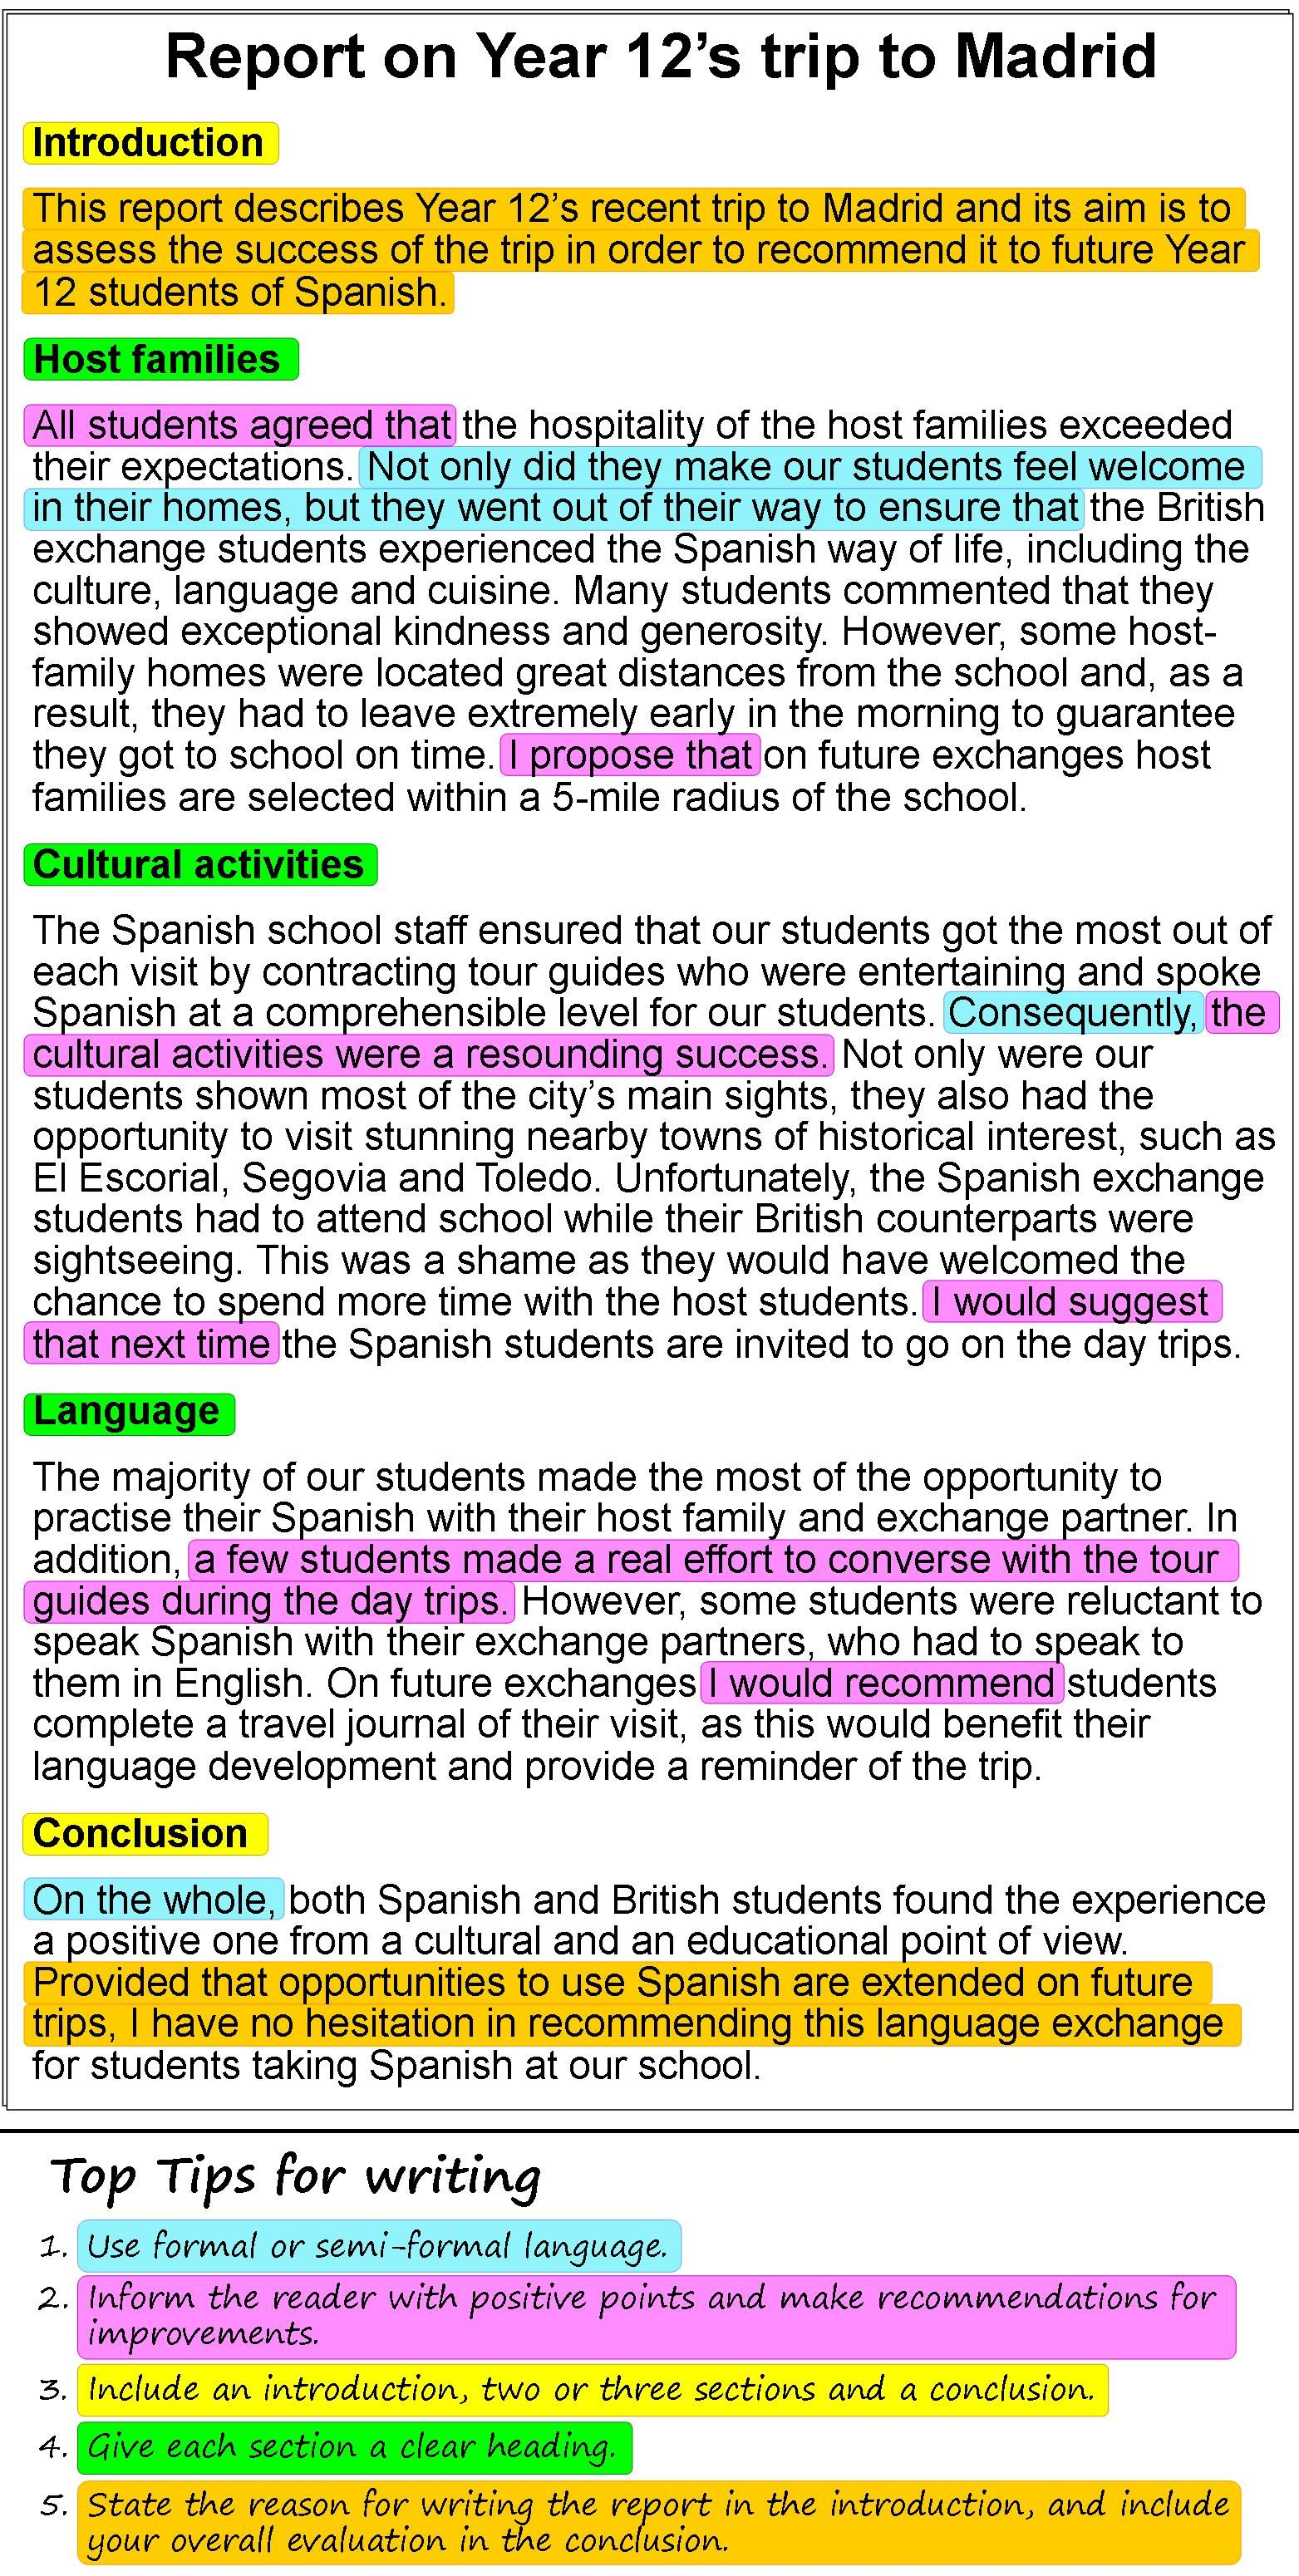 003 A report on a school trip abroad IELTS Writing 2